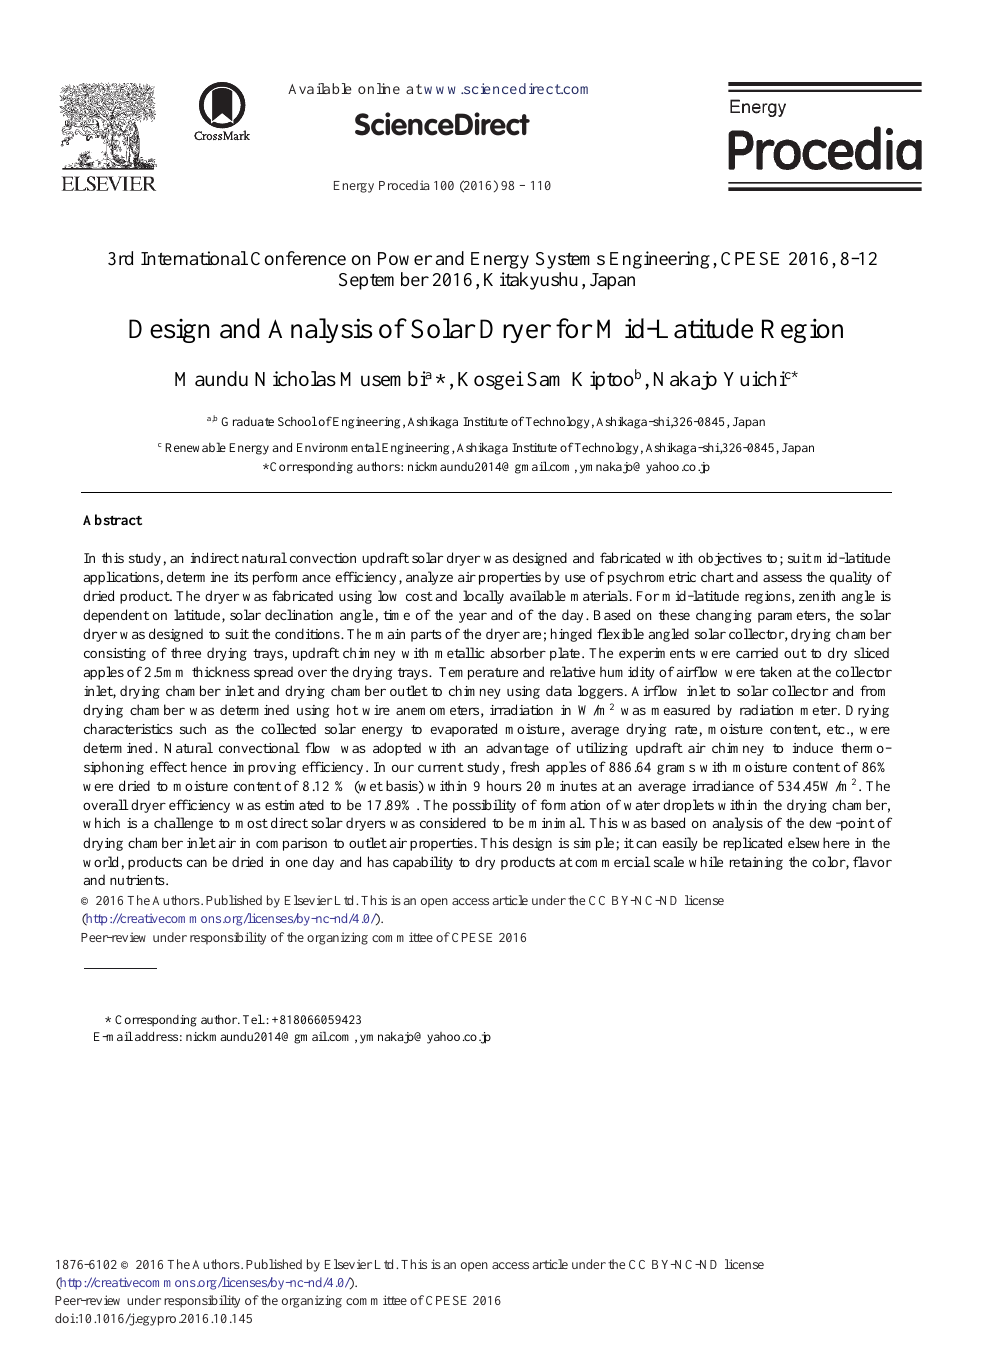 Design and Analysis of Solar Dryer for Mid-Latitude Region